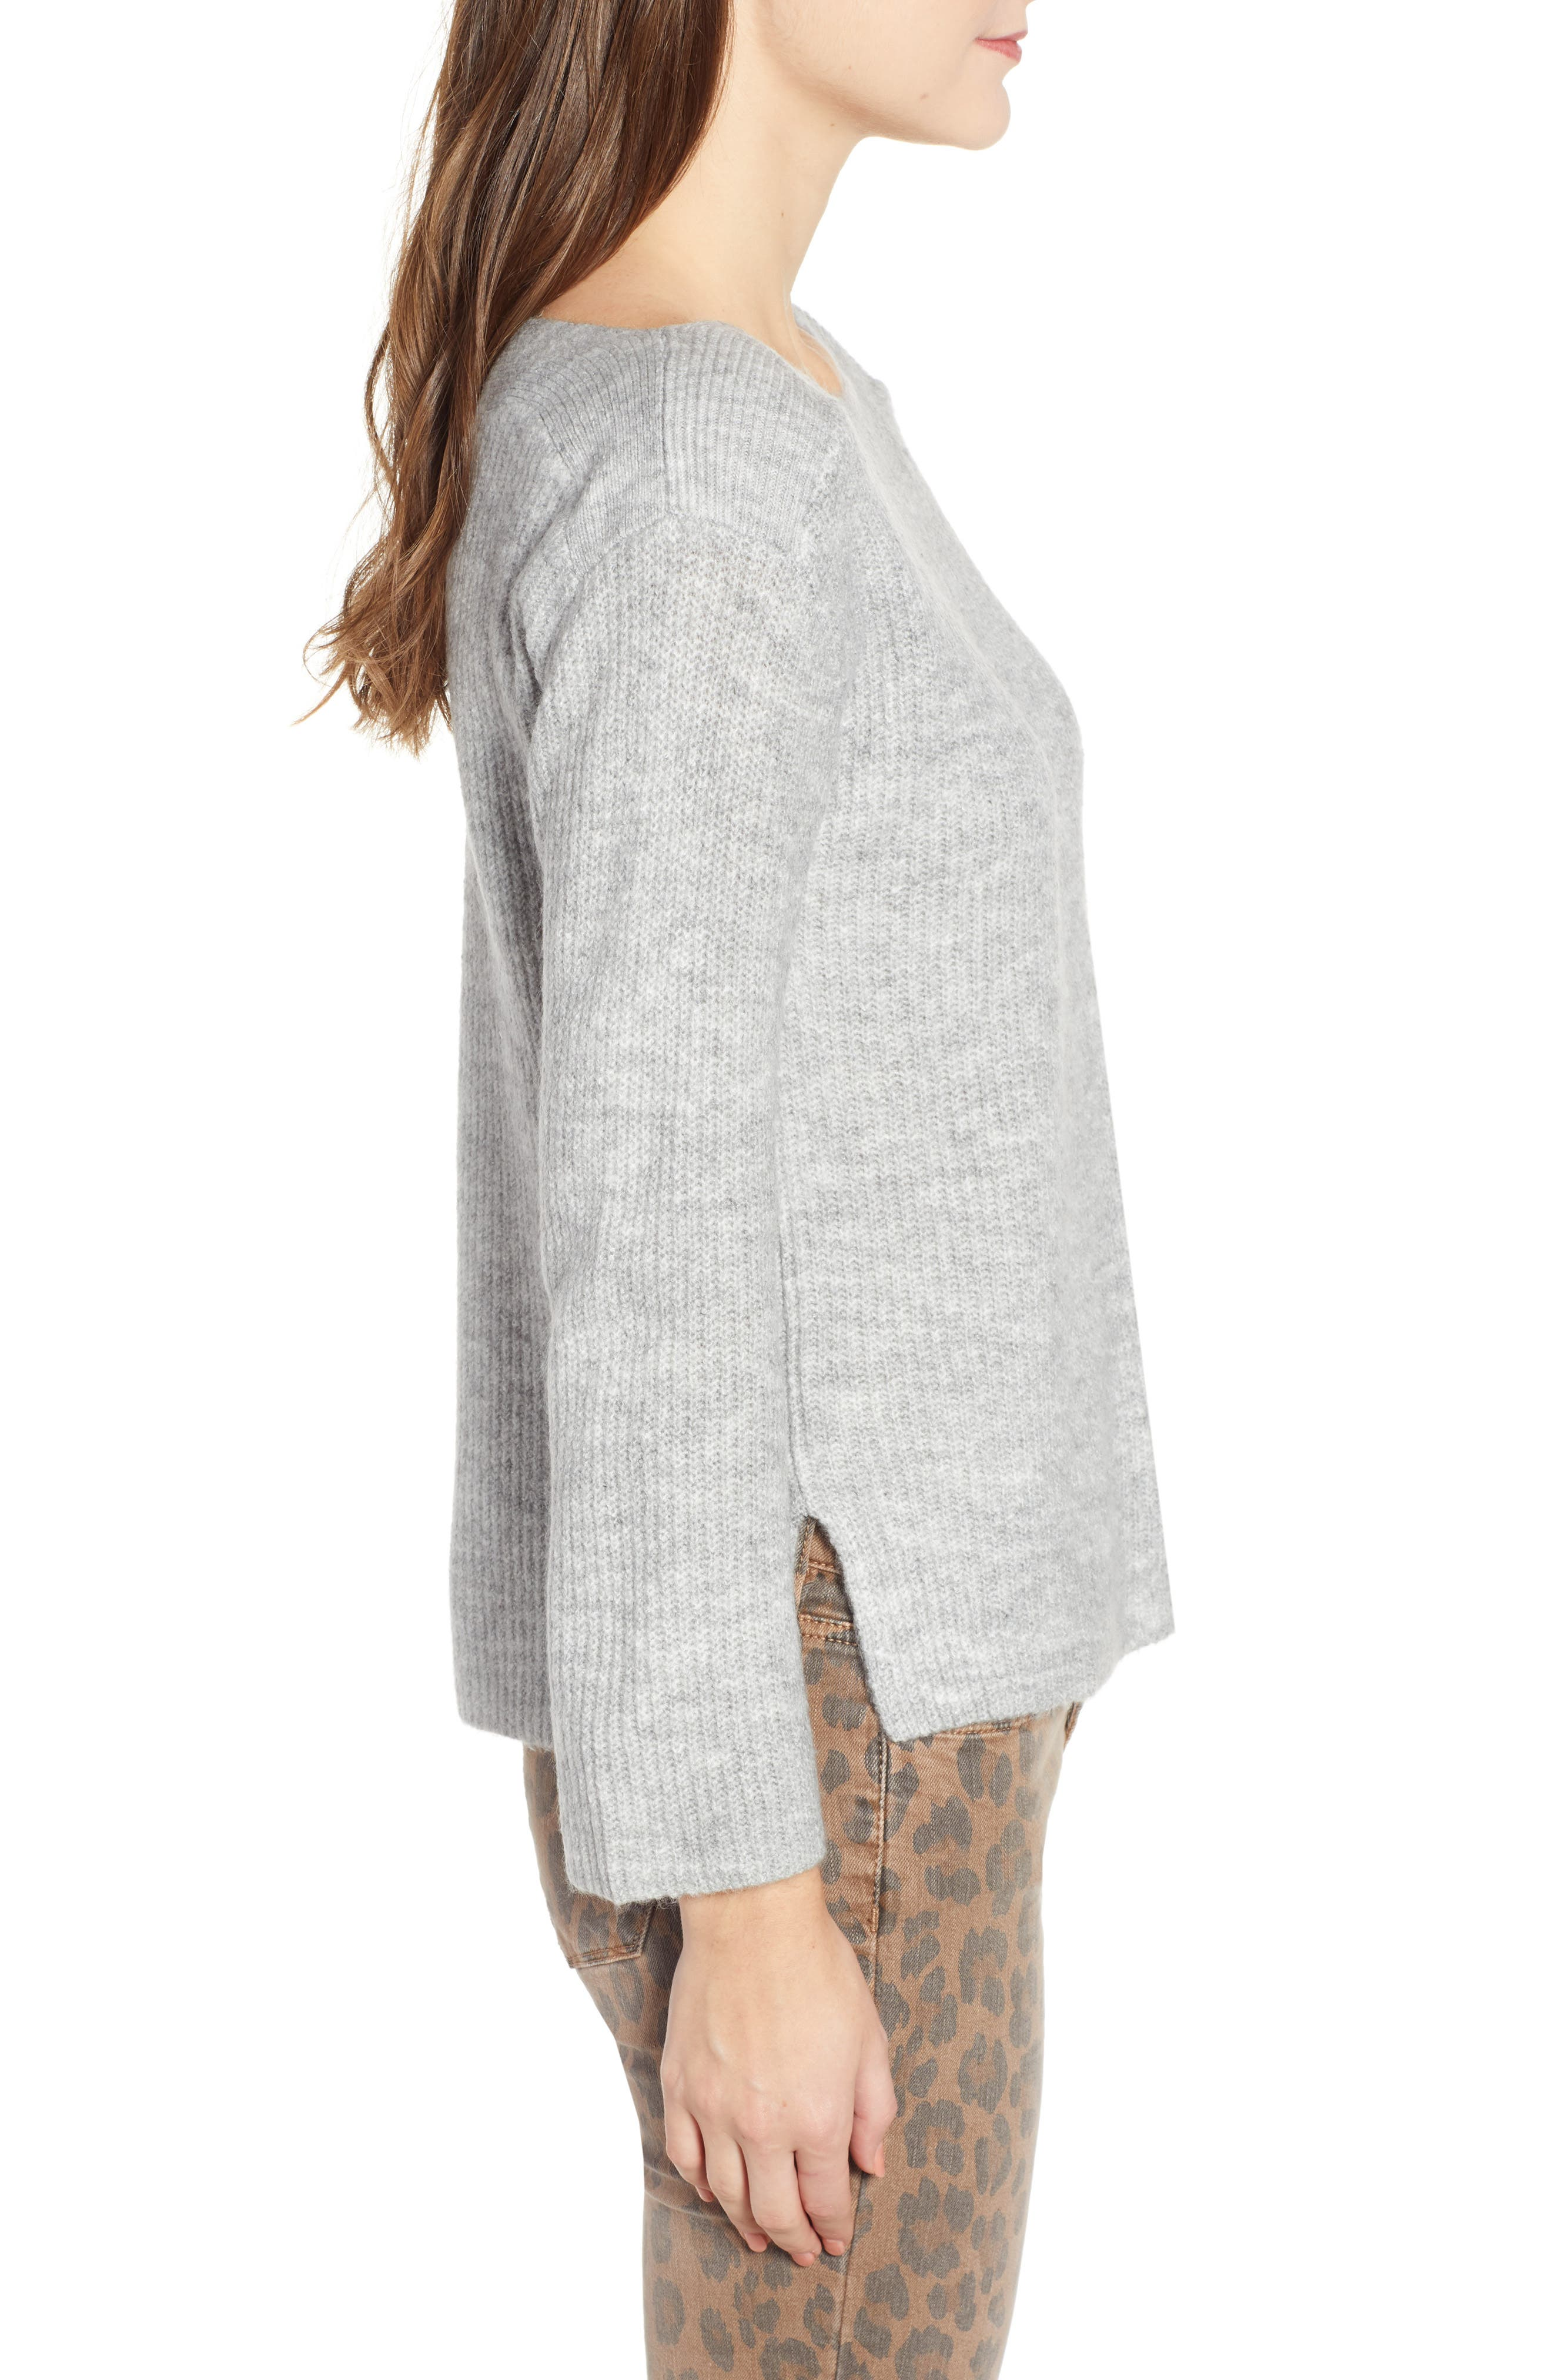 Cozy Femme Pullover Sweater,                             Alternate thumbnail 3, color,                             GREY PEARL HEATHER